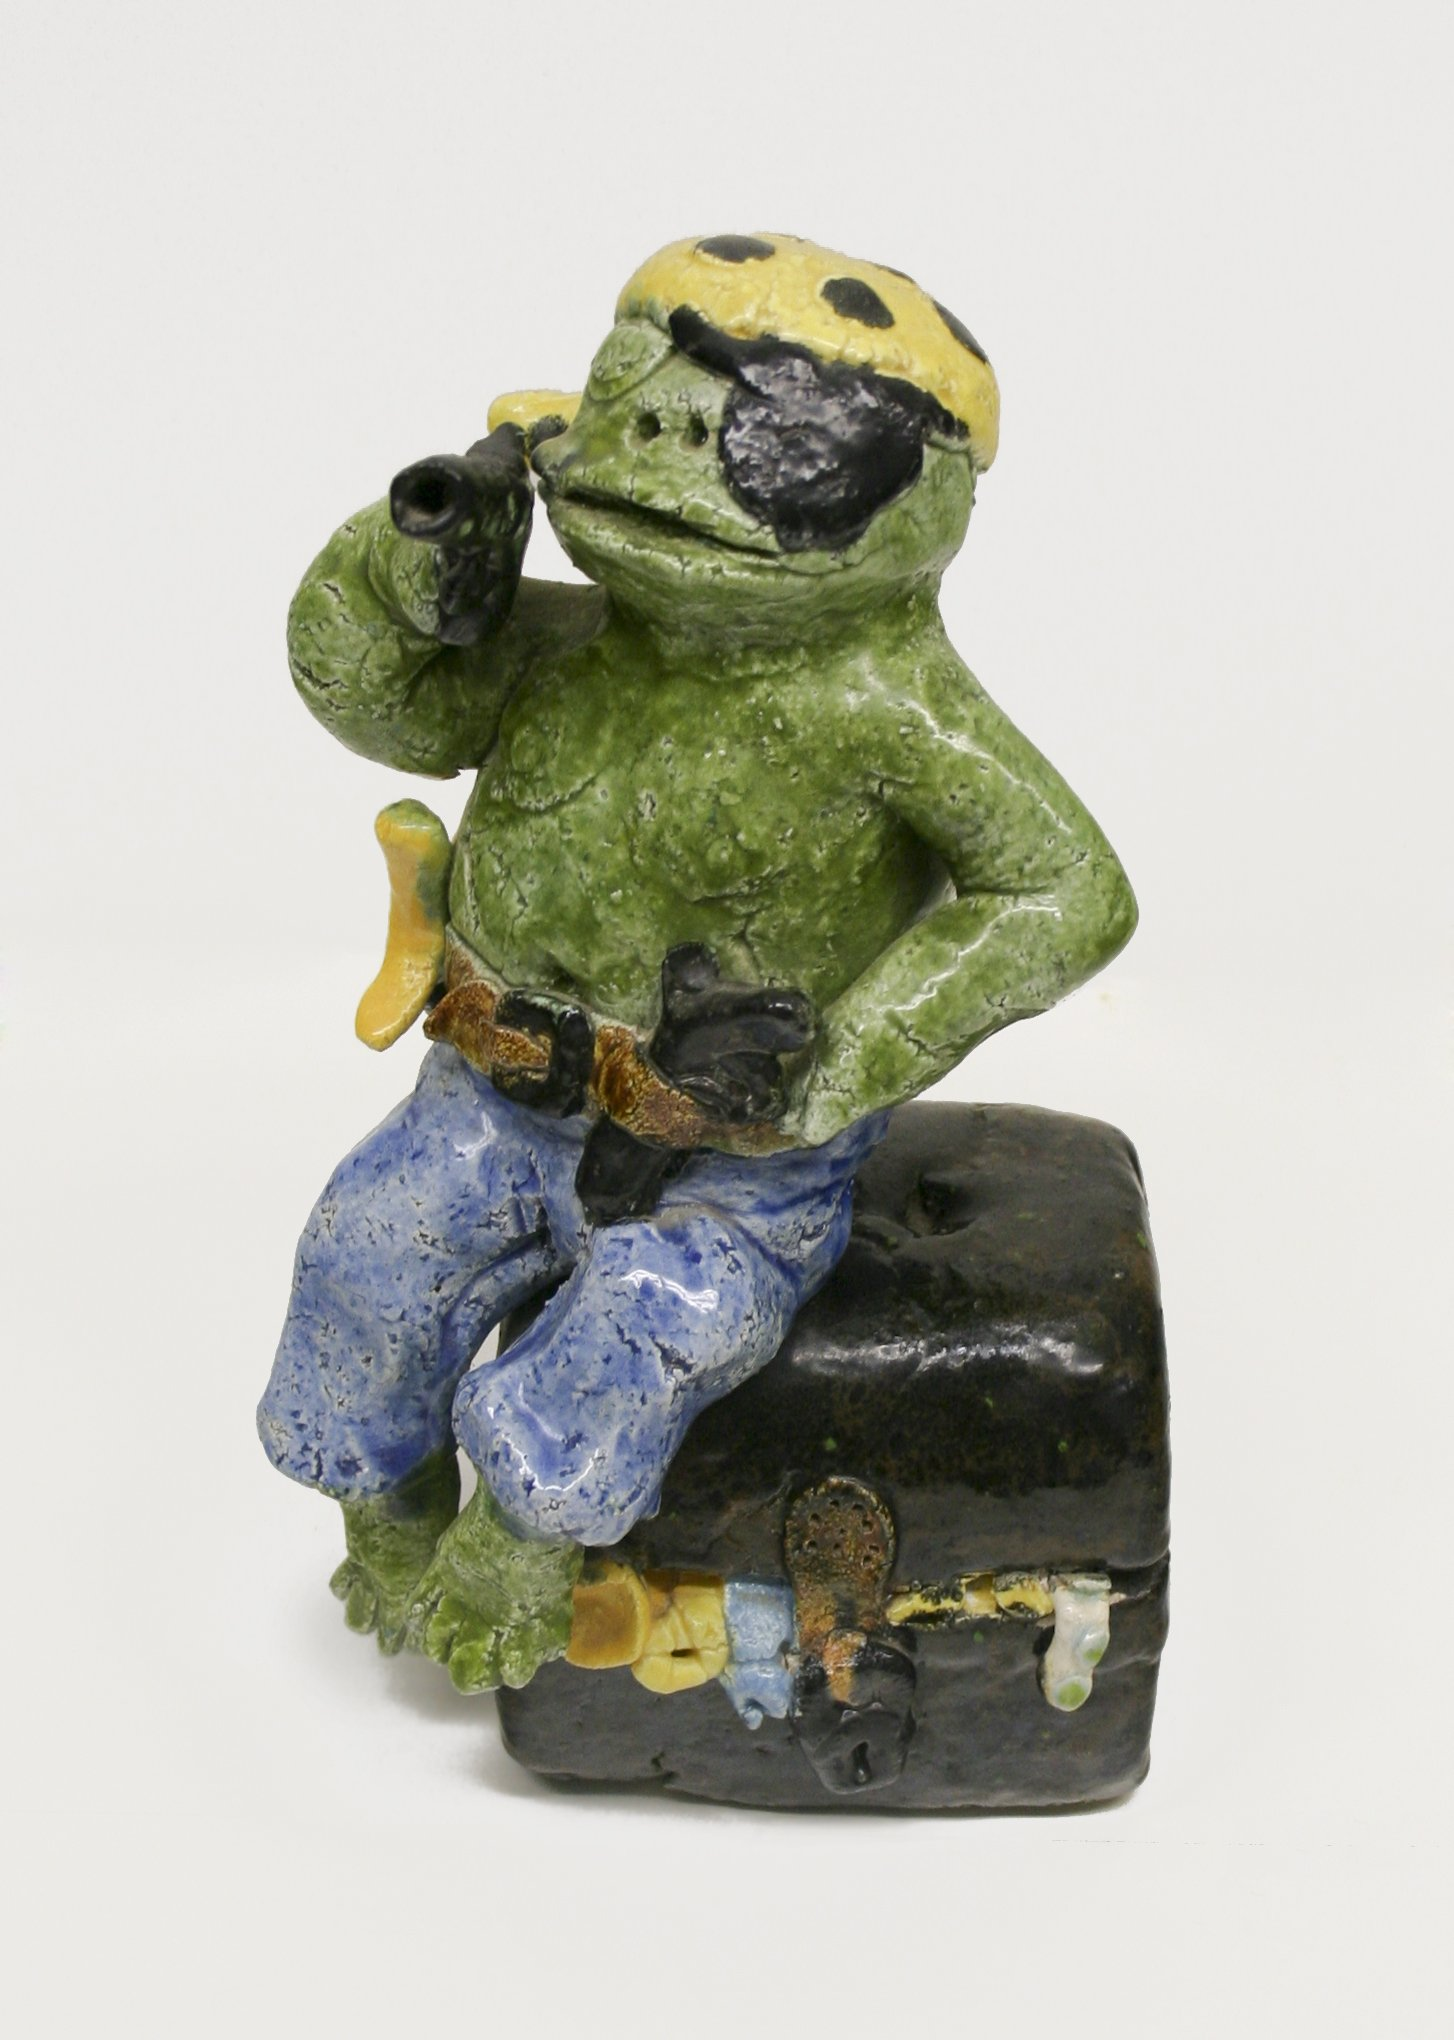 David Gilhooly Untitled Pirate Frog, 1970